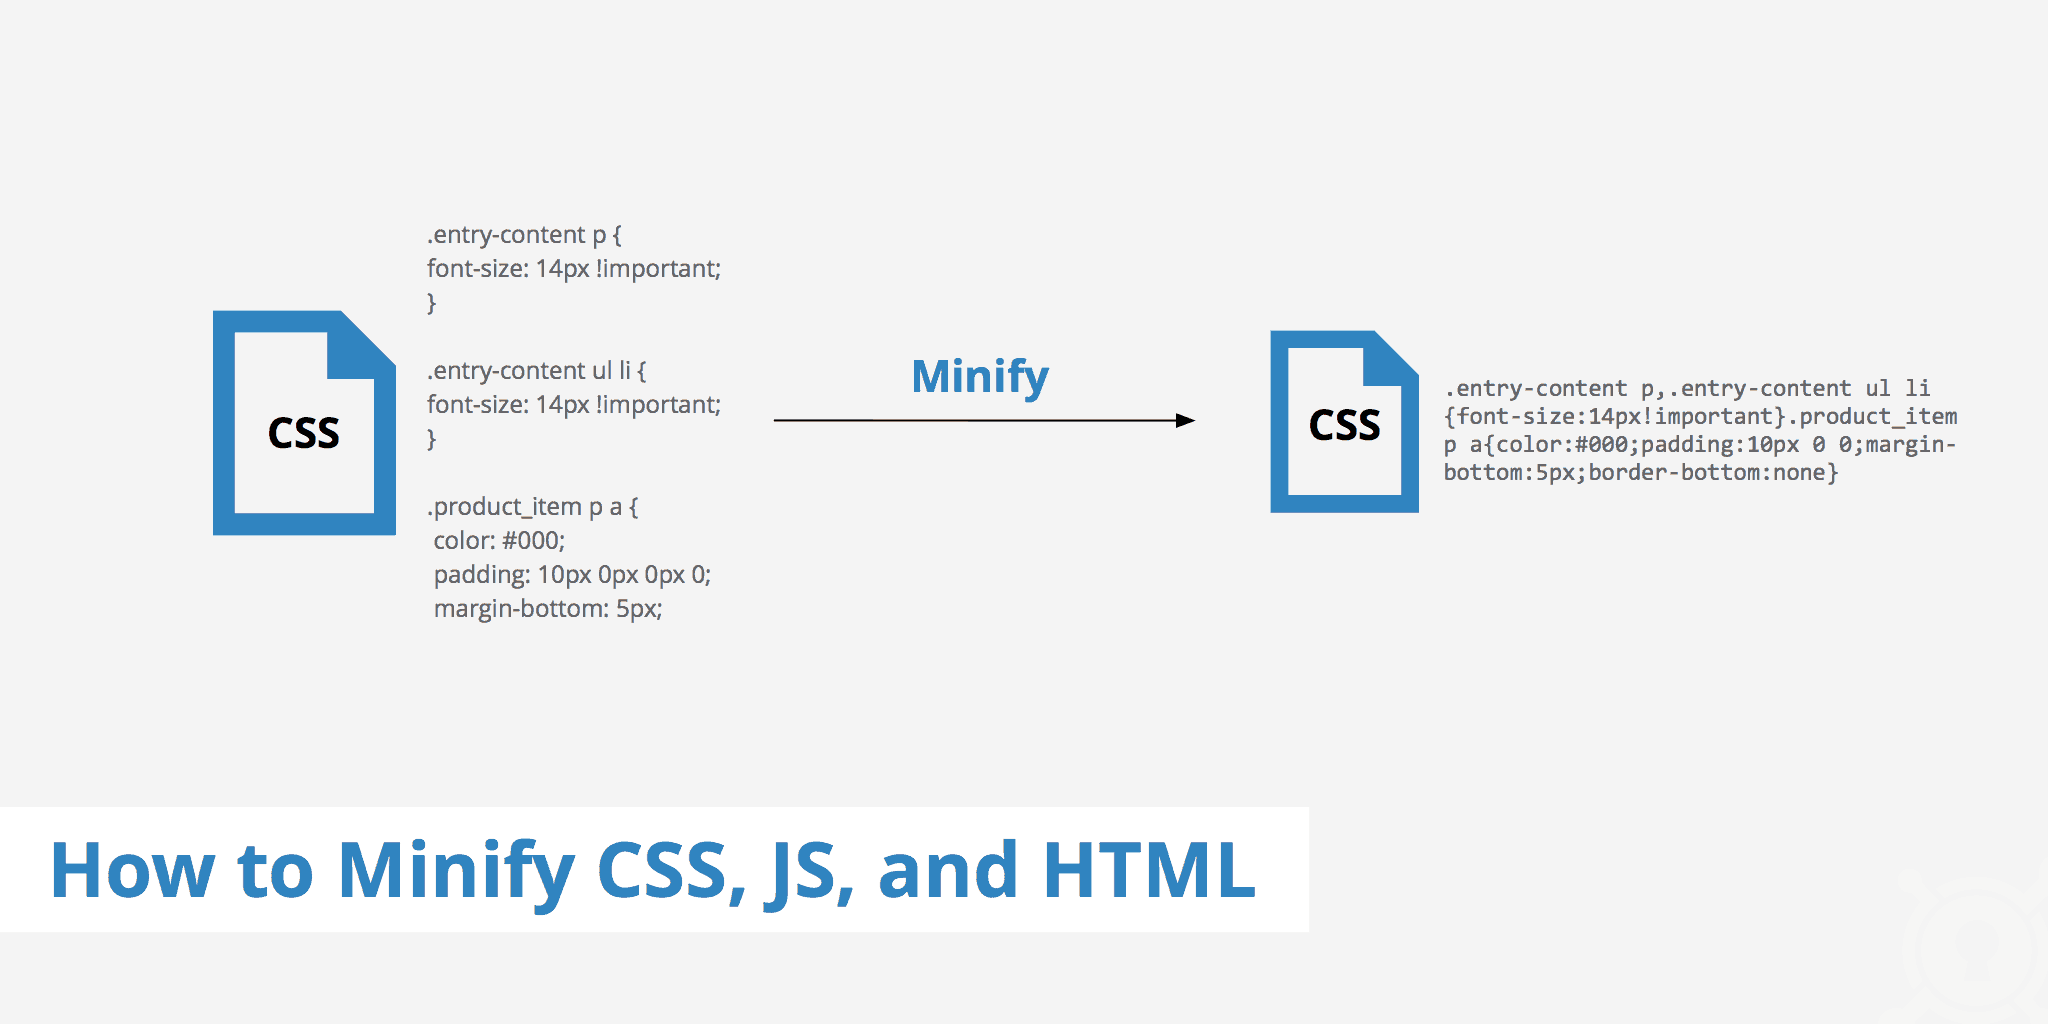 How to minify CSS